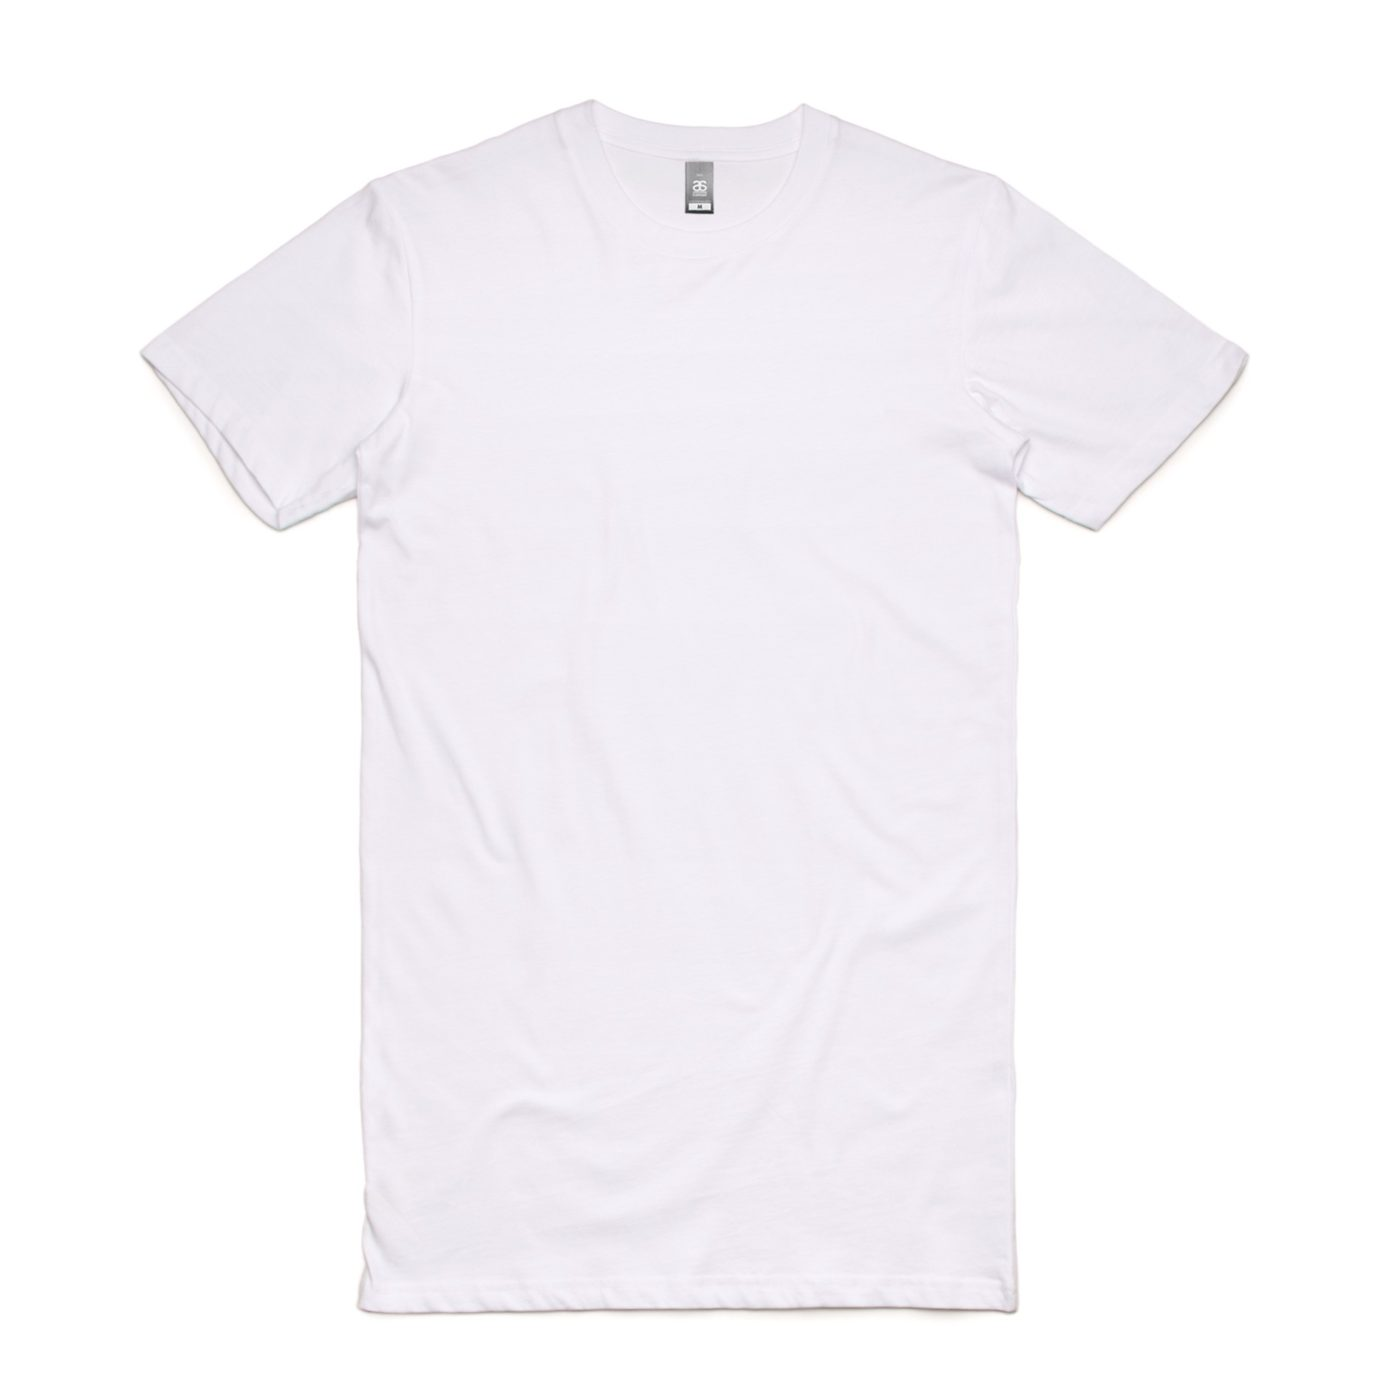 White AS Colour AS5013 Tall Tee longer length tee great to print or embroider